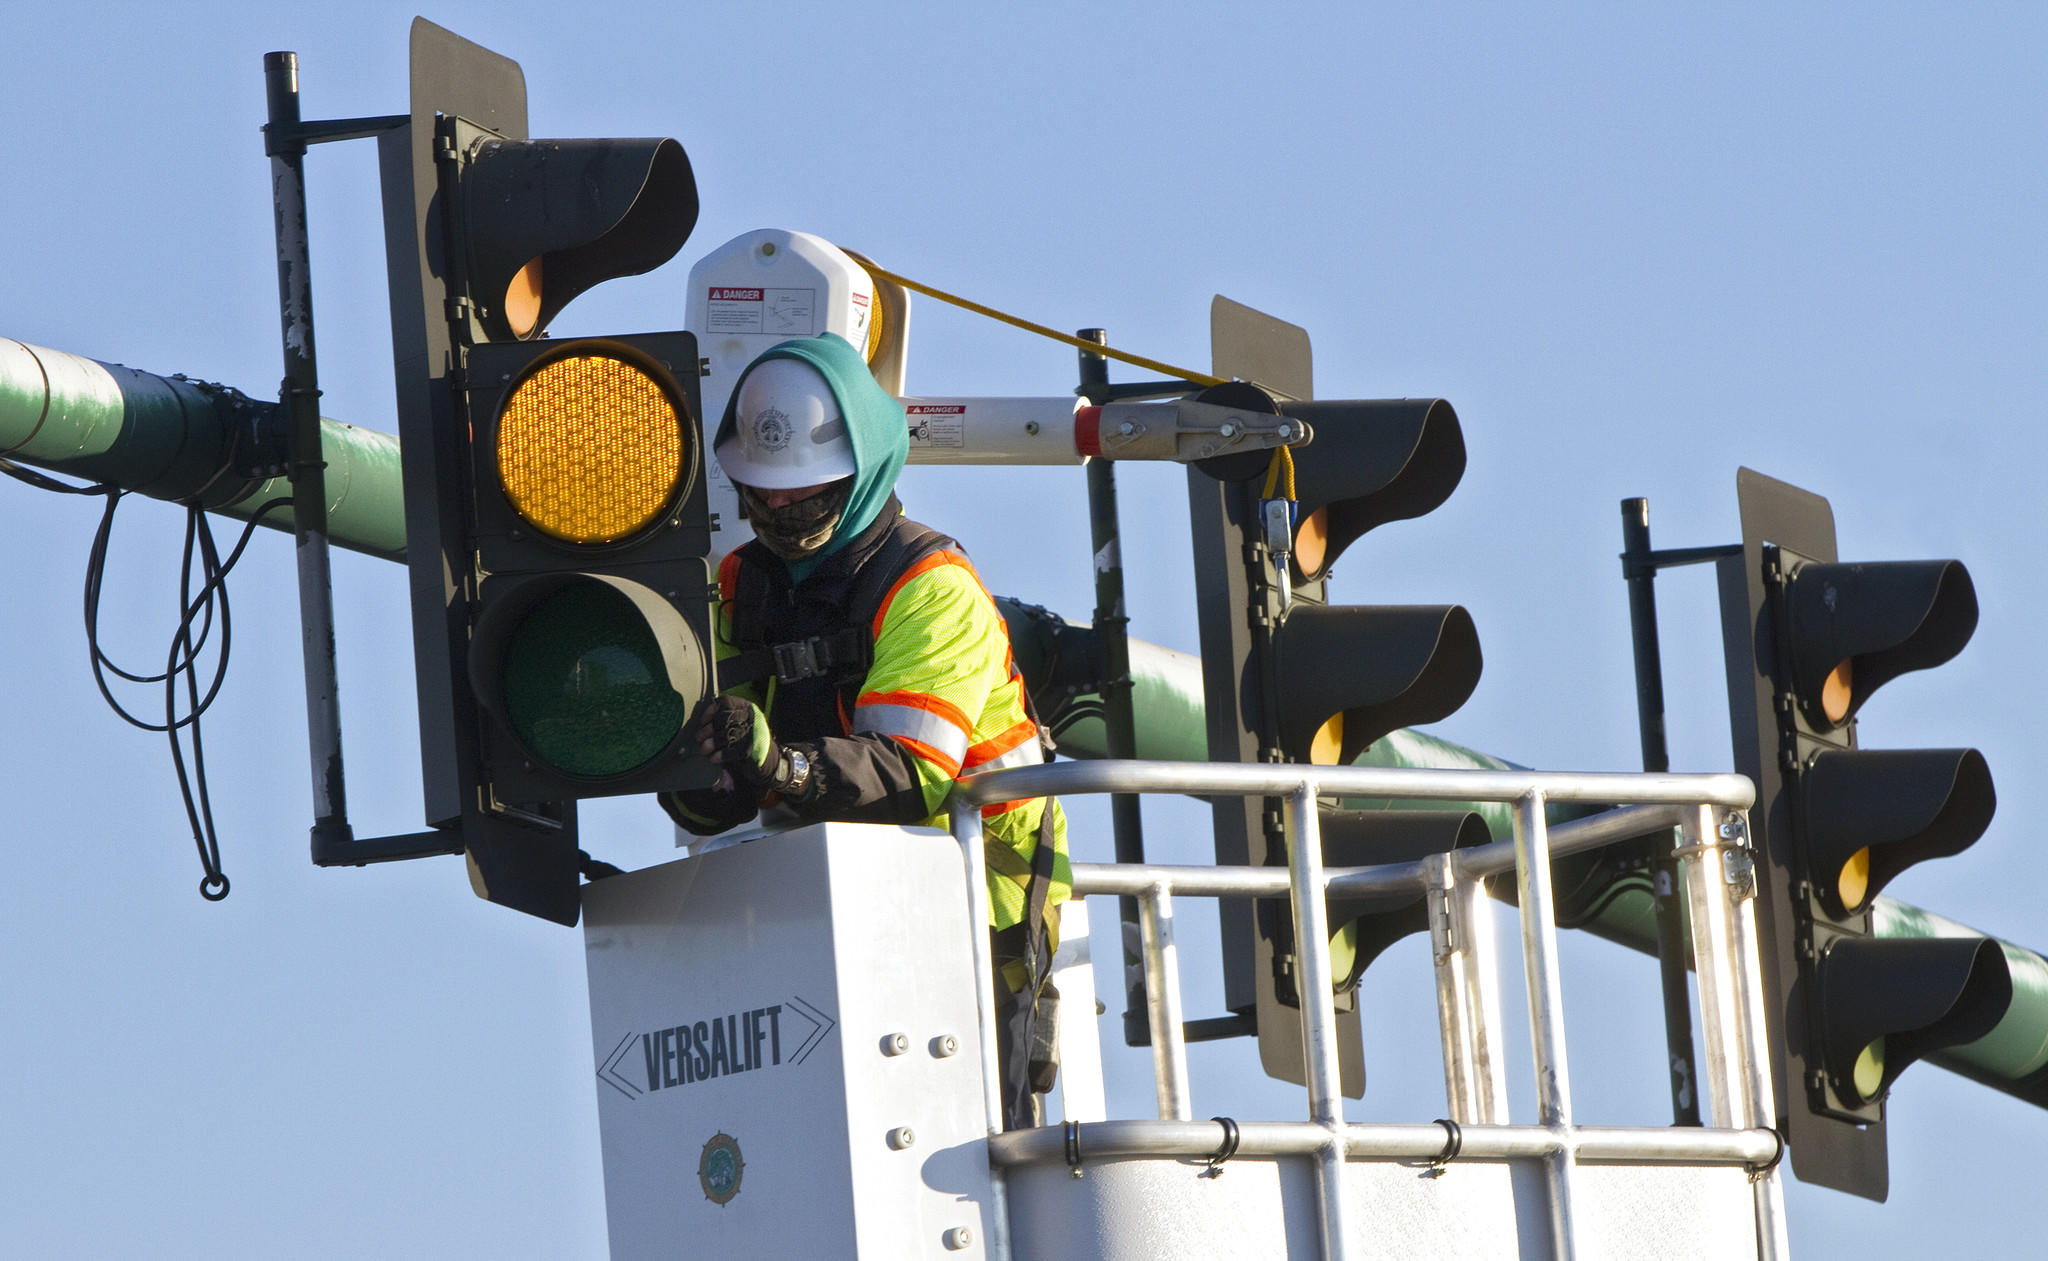 Technician Dan Bearor installs new LED lightbulbs in the traffic signals at the intersection of Jefferson Avenue and Brick Kiln Boulevard on Friday in Newport News. The city of Newport News began switching to LED units about seven years ago, and technicians are now working to replace the old lights with new ones.